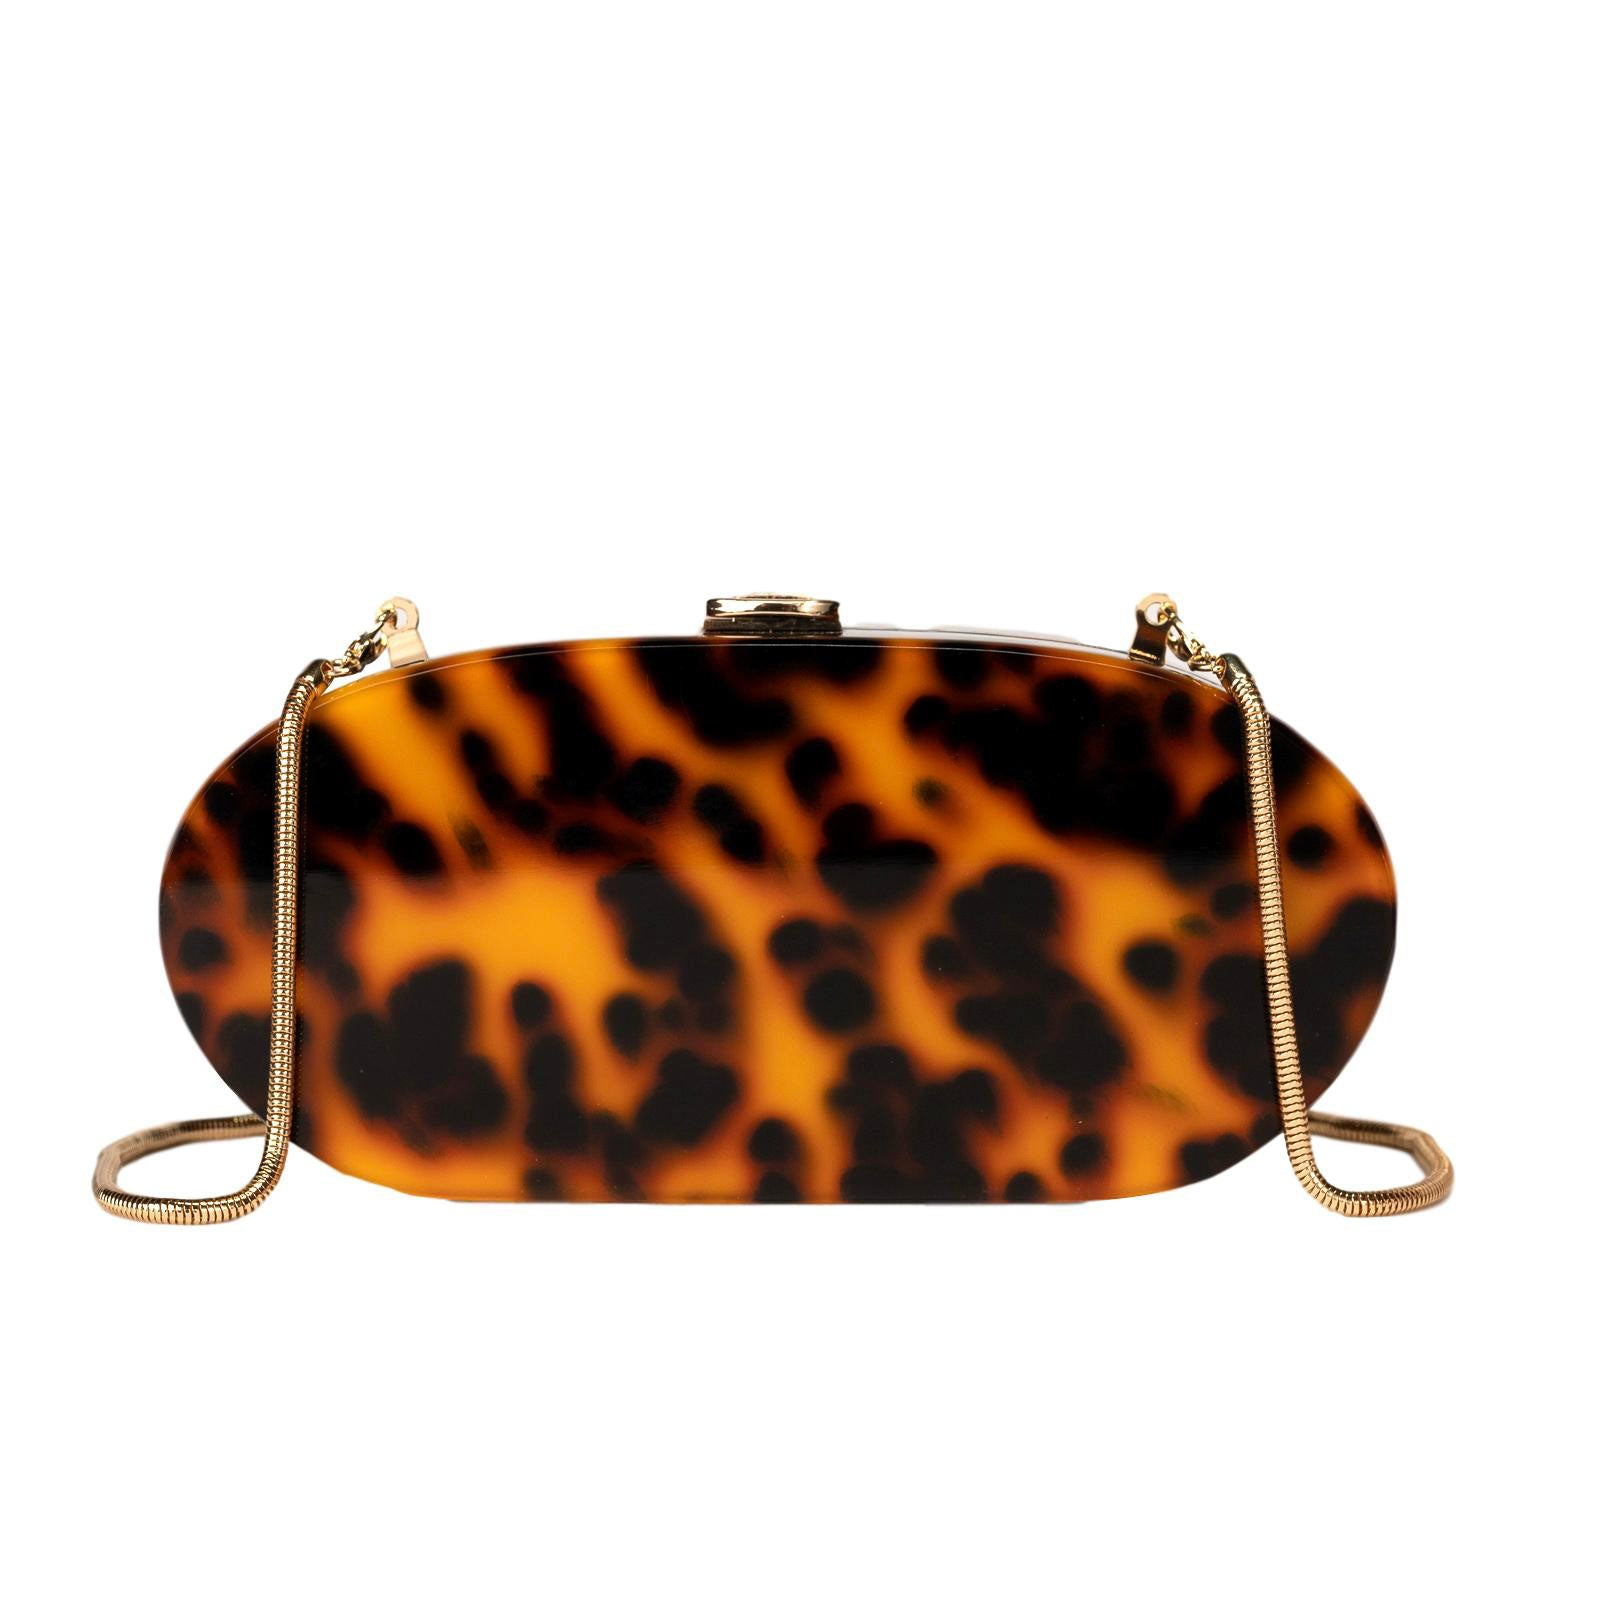 Mon Purse Mali Acrylic Clutch in Tortoise Shell